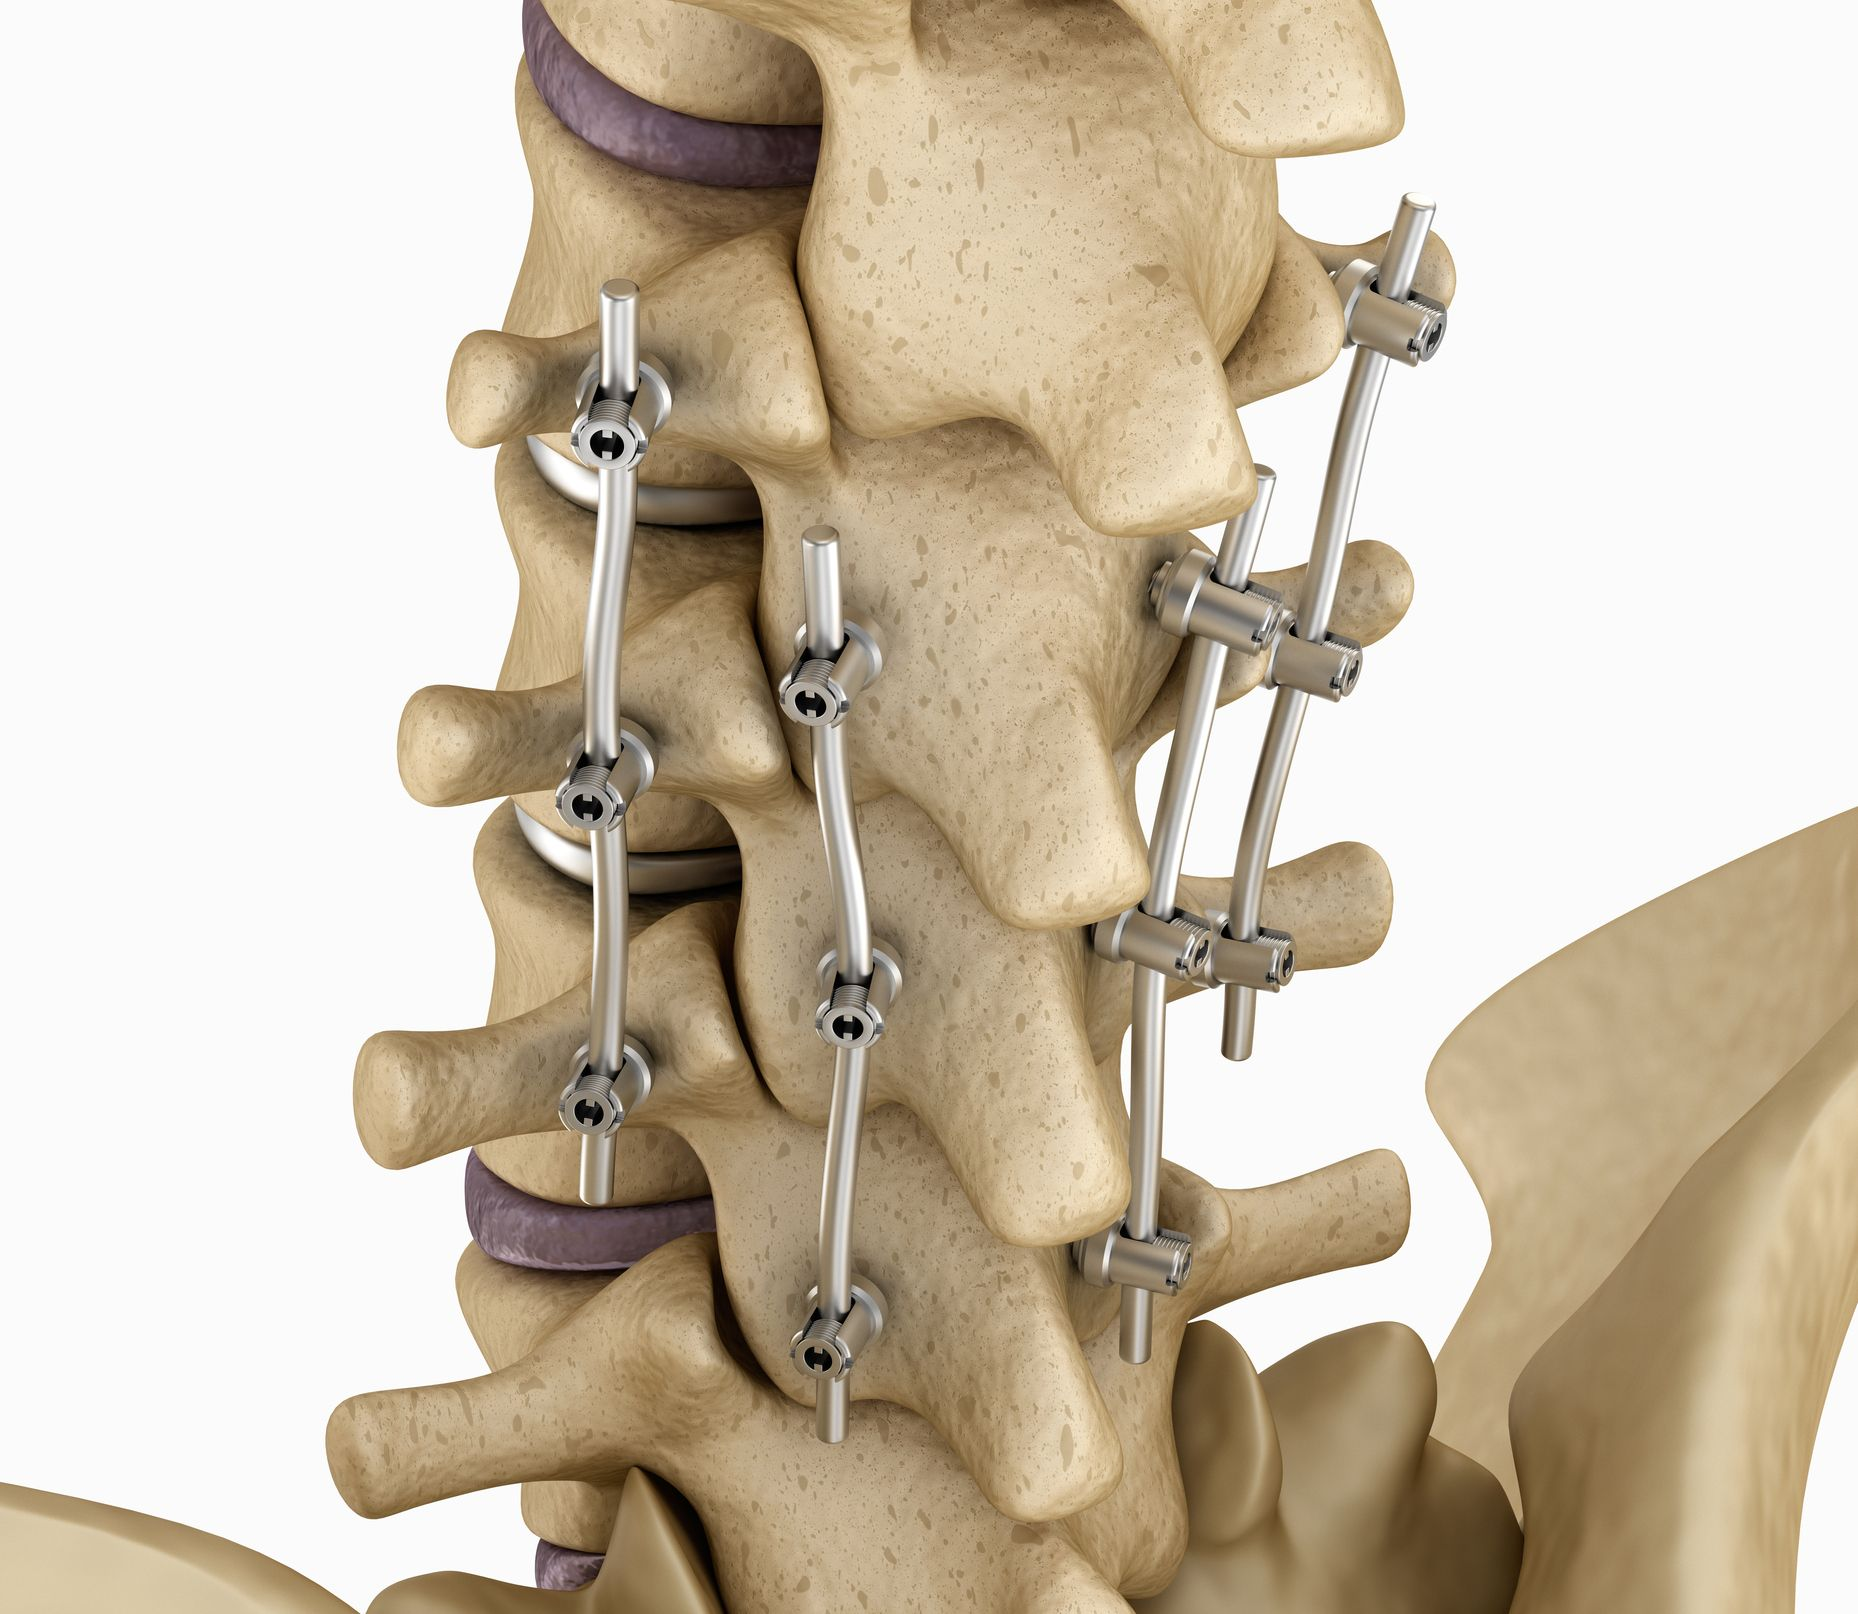 Spinal Fusion In Iran